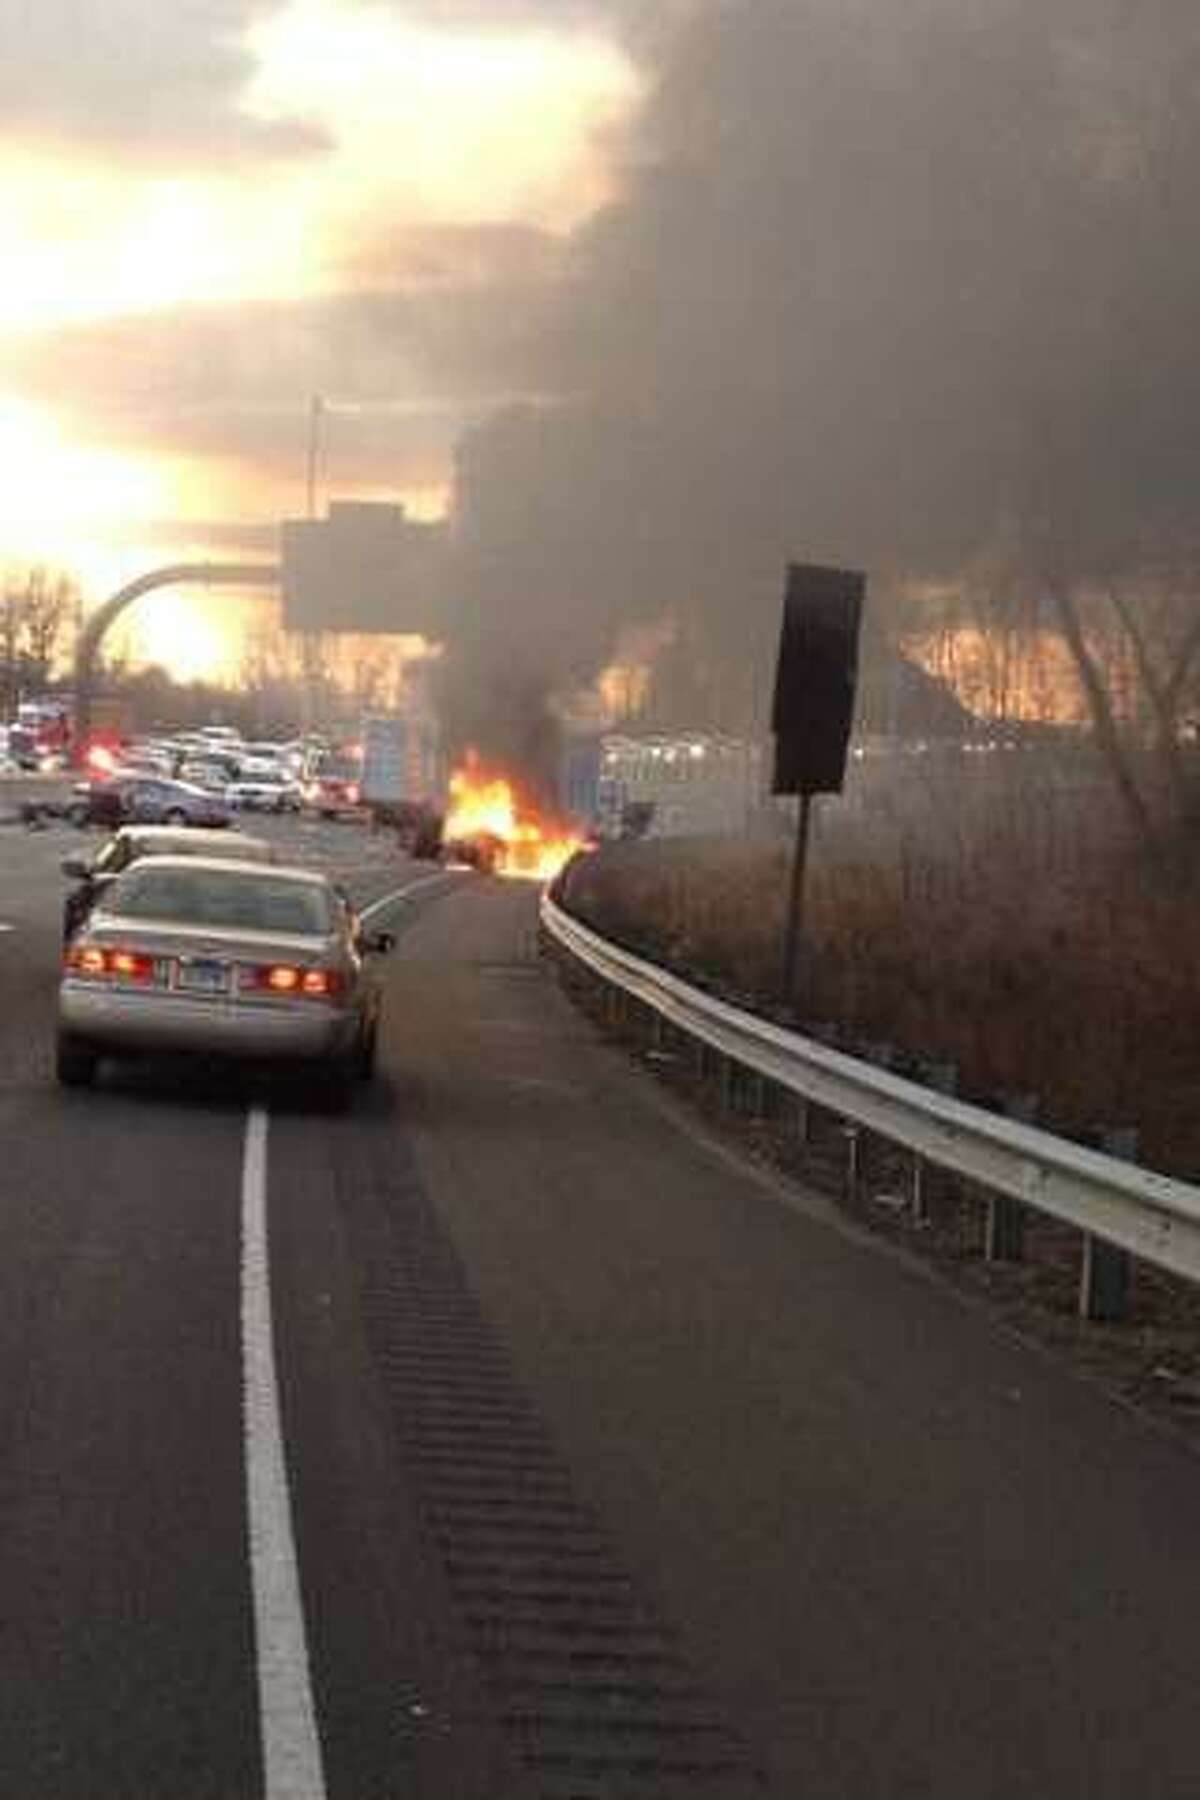 A police chase that began in New Haven ended with a fiery crash on I-95 in East Haven that injured three people on Thursday, Jan. 5, 2011.